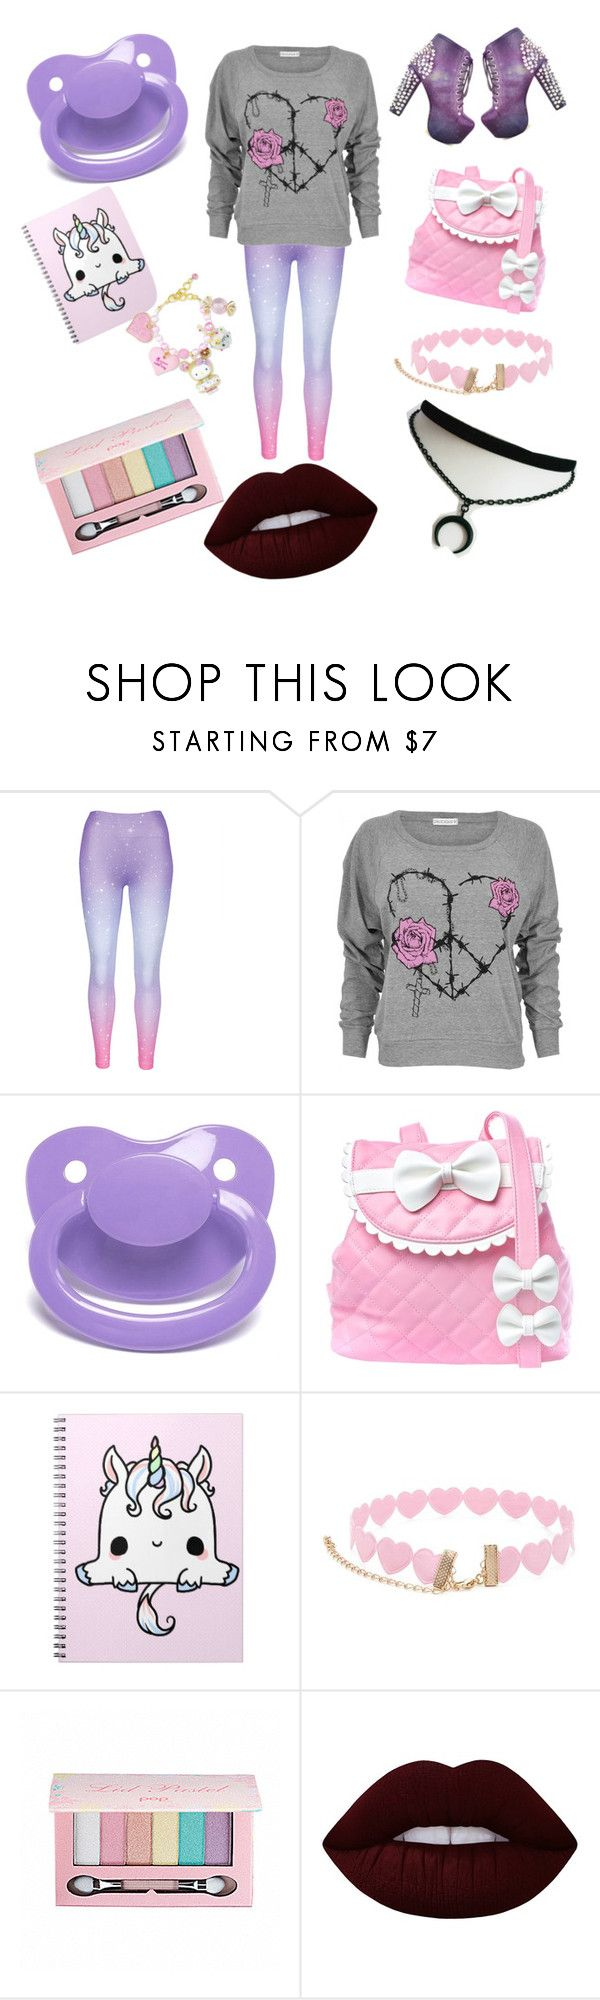 """Pastel goth baby"" by little-liv on Polyvore featuring Barbed, Sugarbaby, Forever 21, Pop Beauty and Lime Crime"